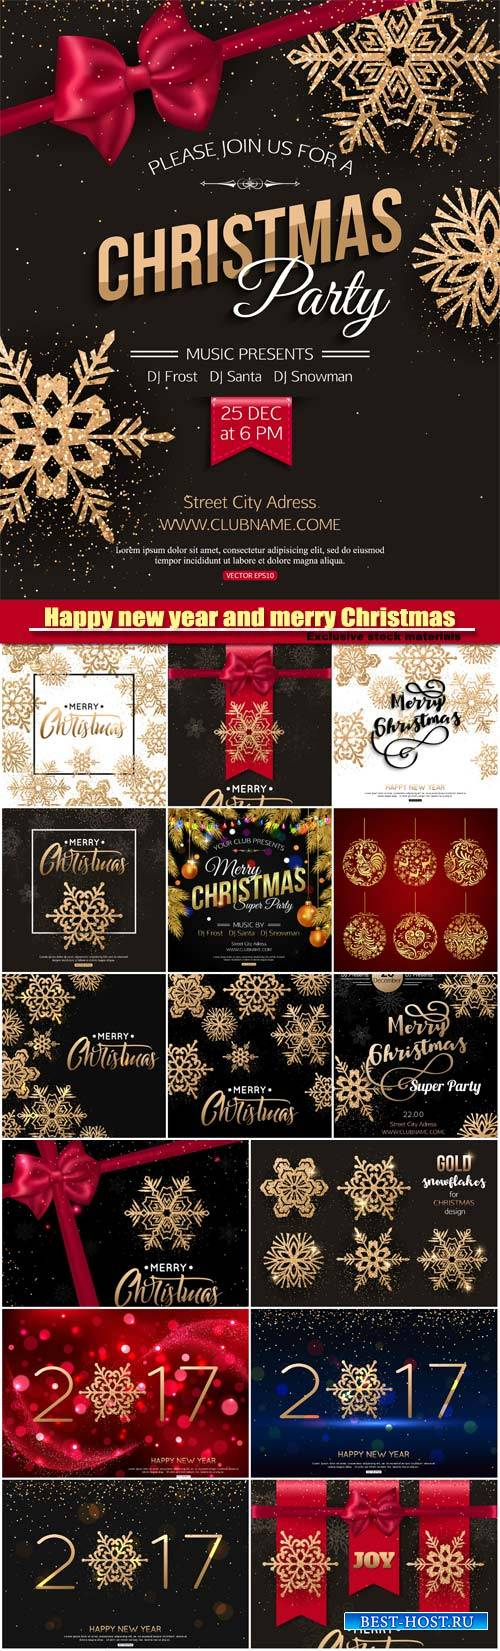 Merry Christmas and Happy new year vector, snowflakes background